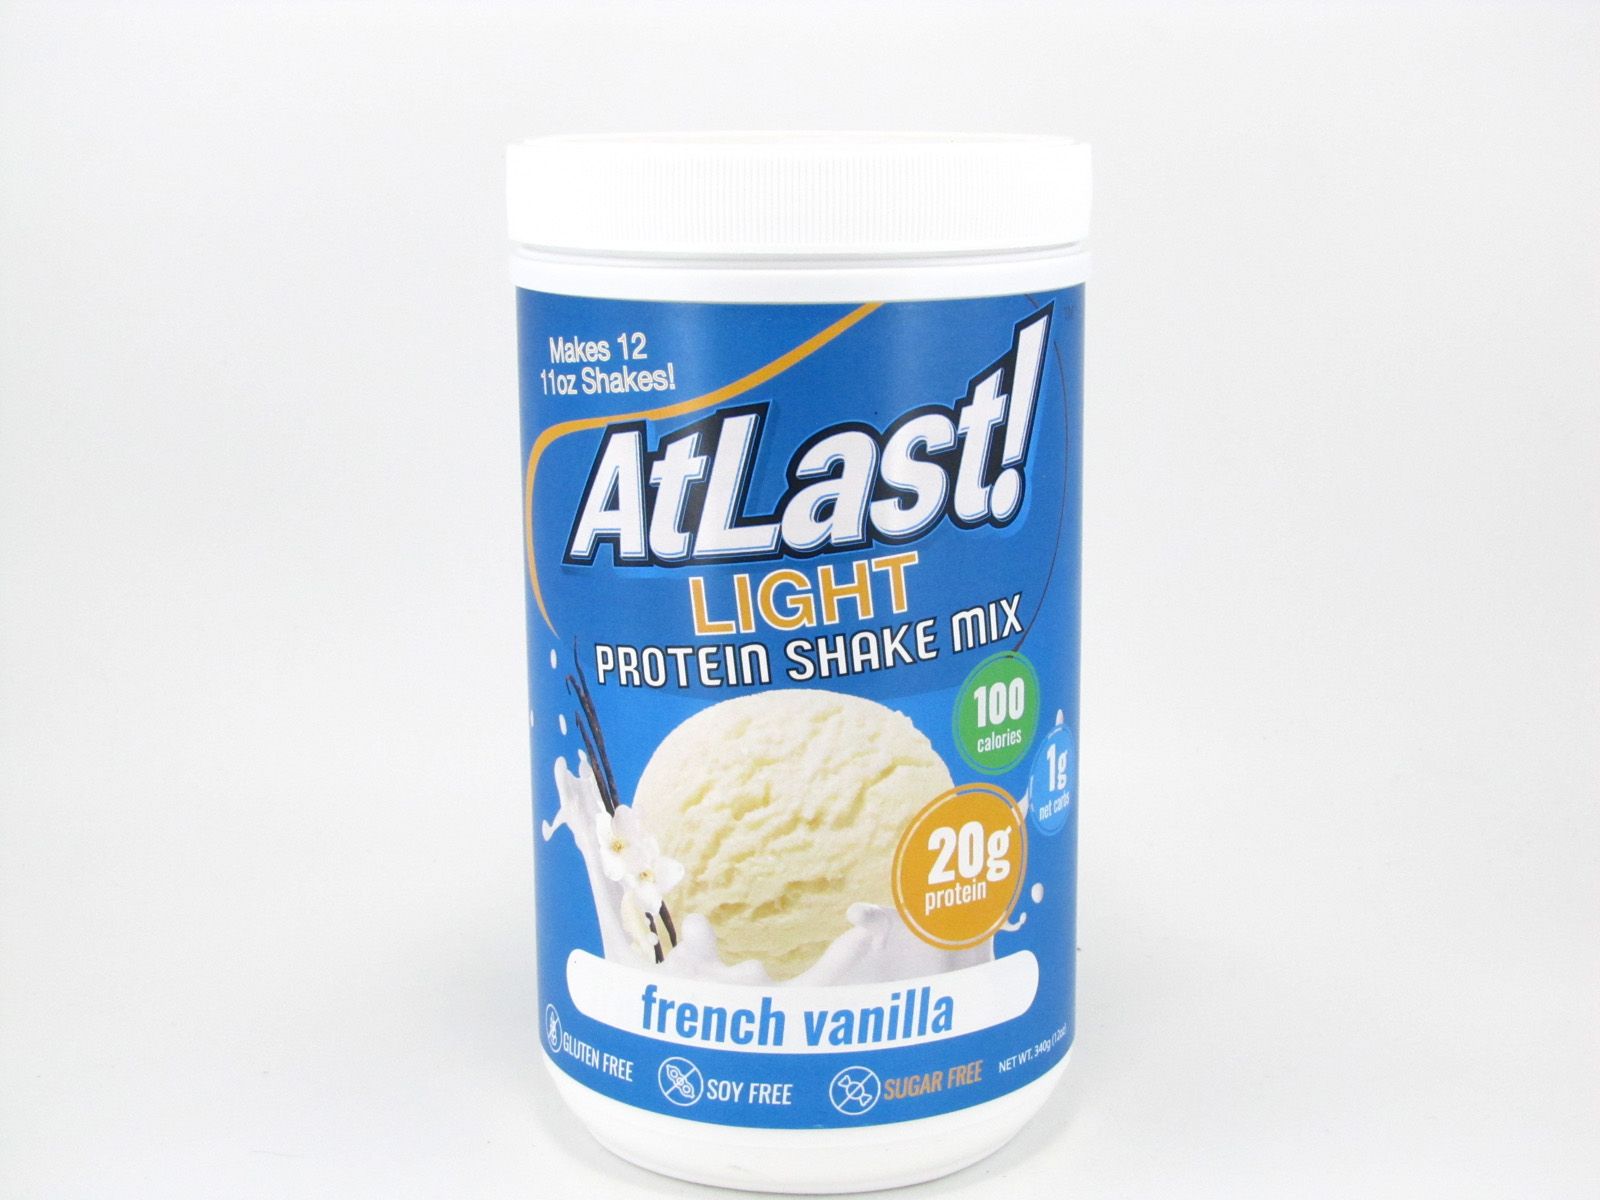 AtLast Light Protein Shake Mix - French Vanilla - front view